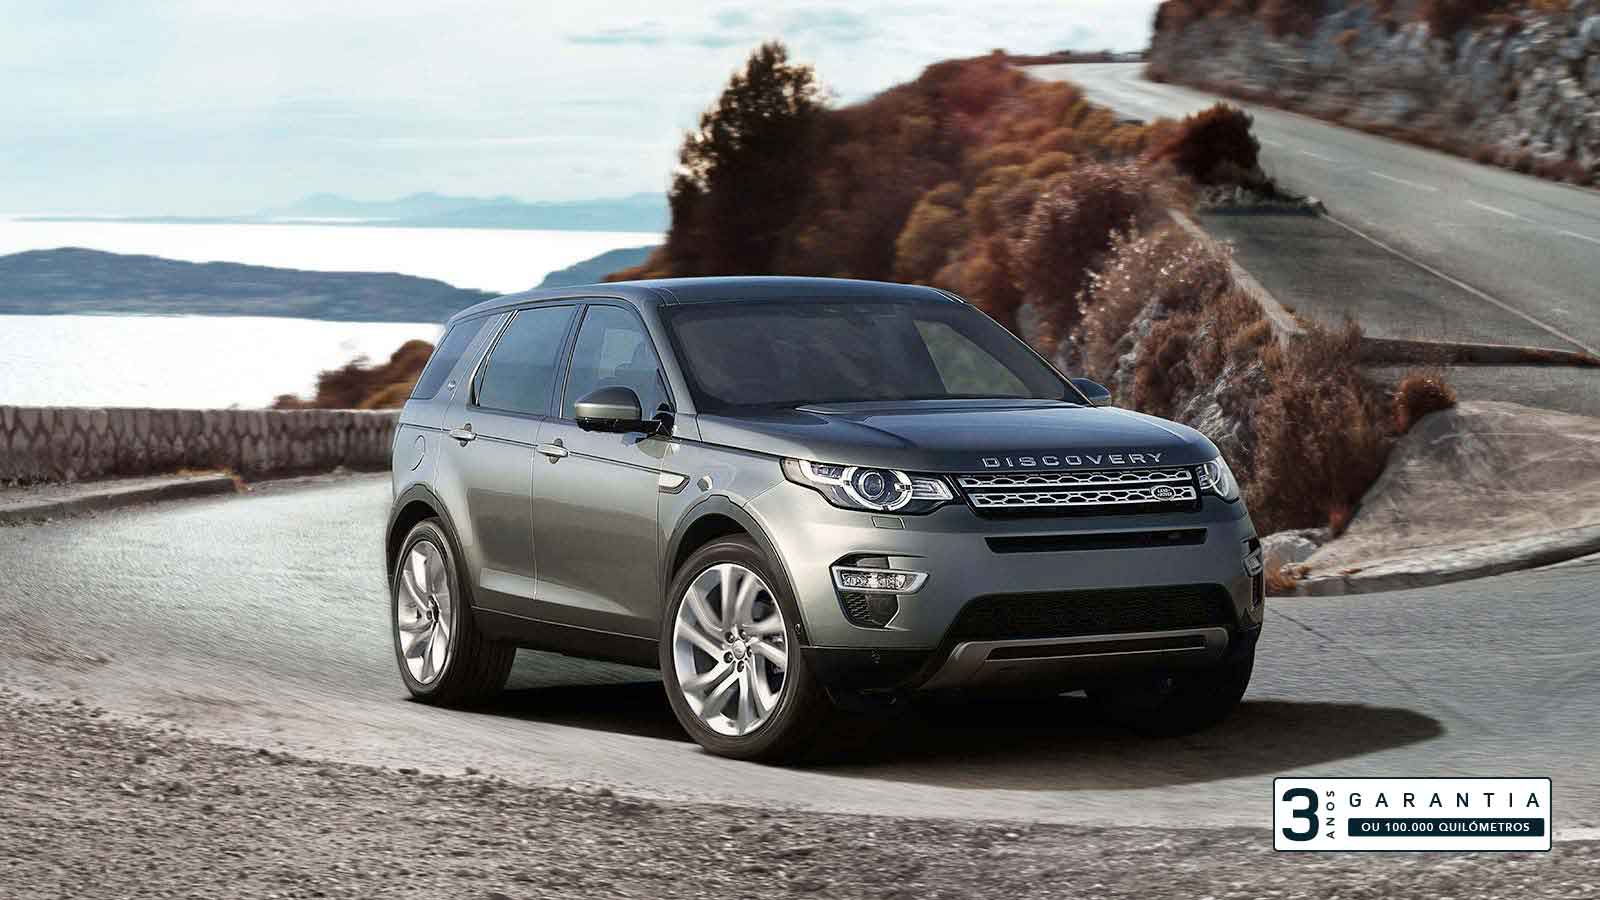 DISCOVERY SPORT - RENTING